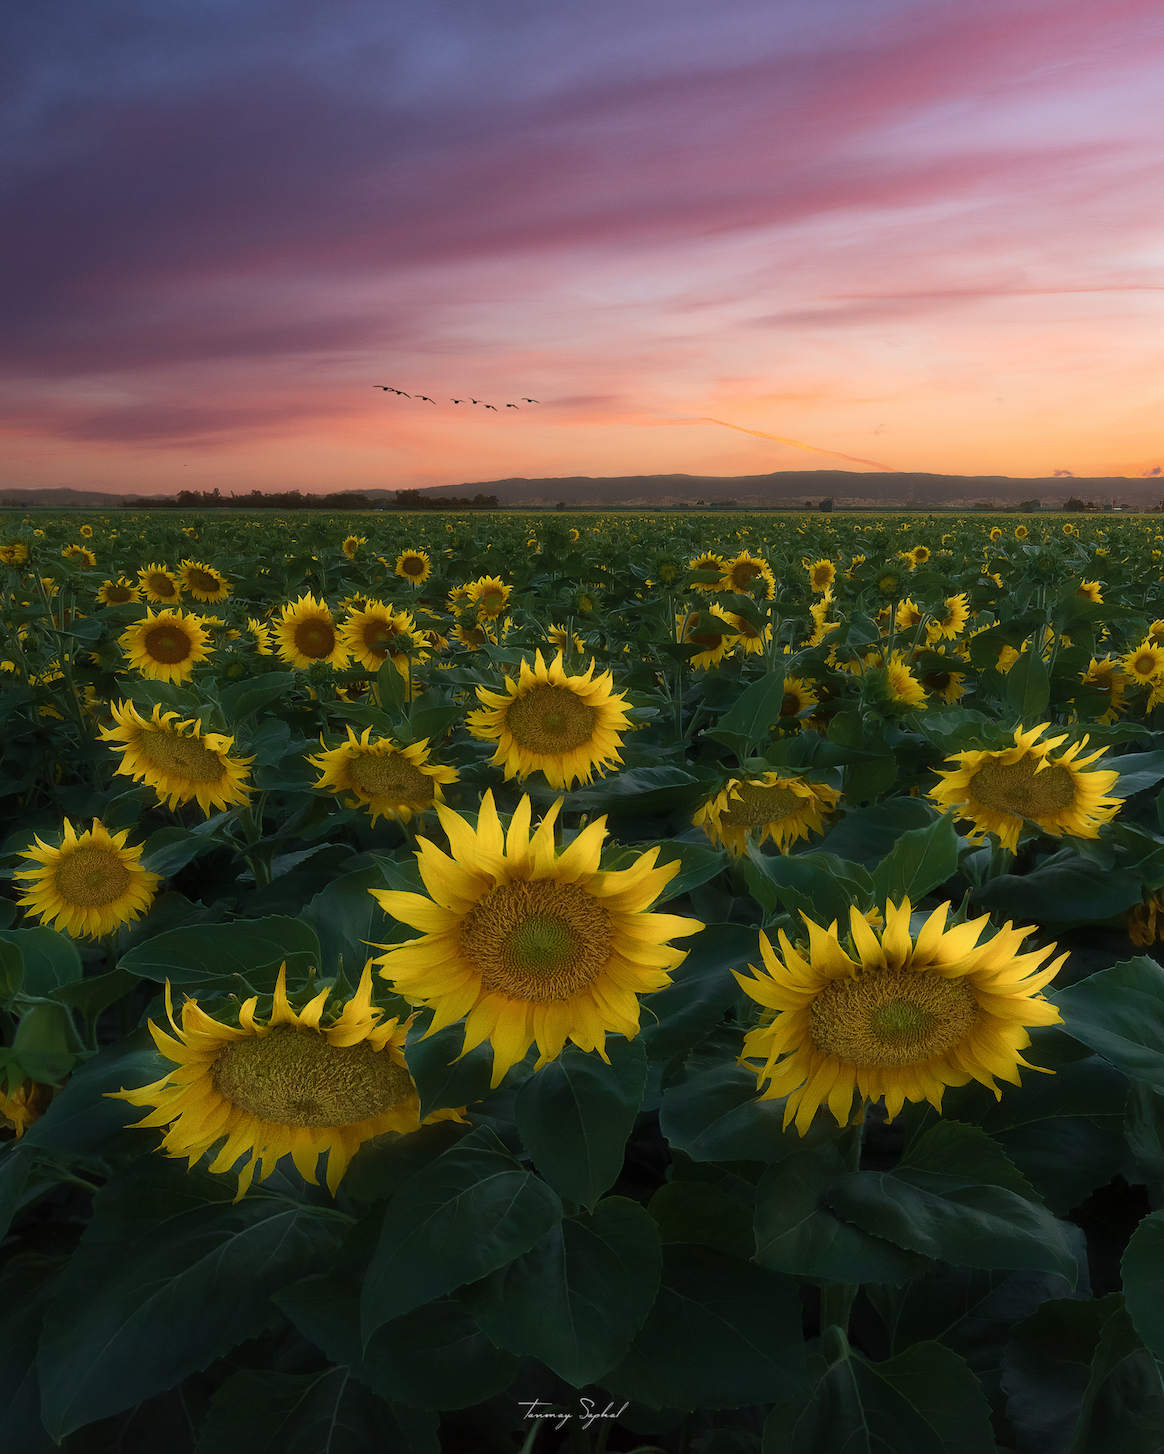 Sun sets over a field of gold